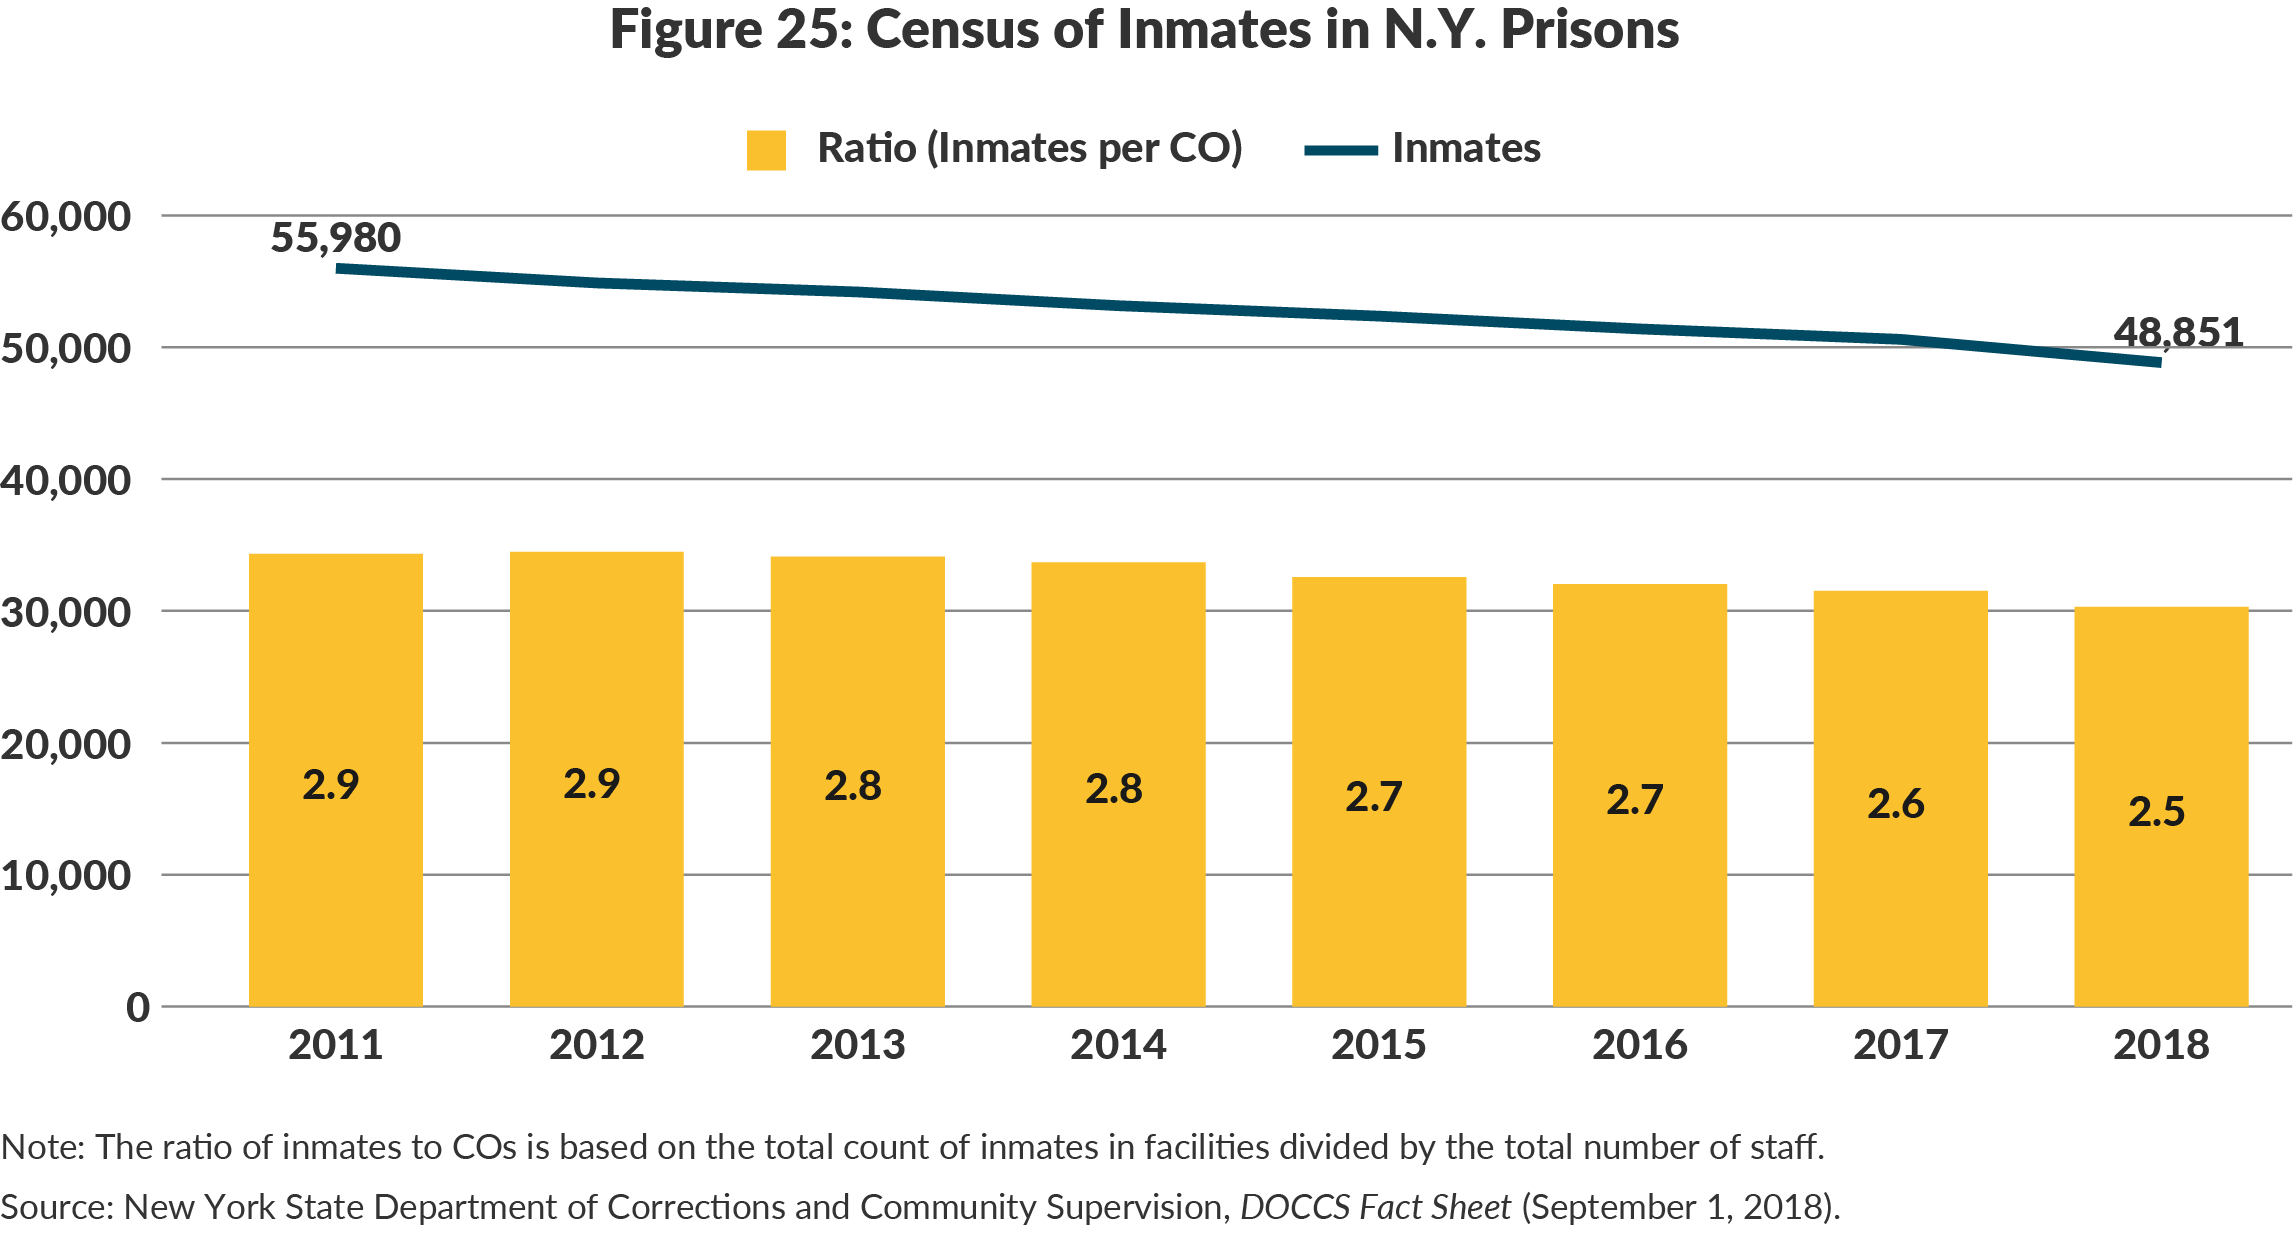 Figure 25: Census of Inmates in N.Y. Prisons